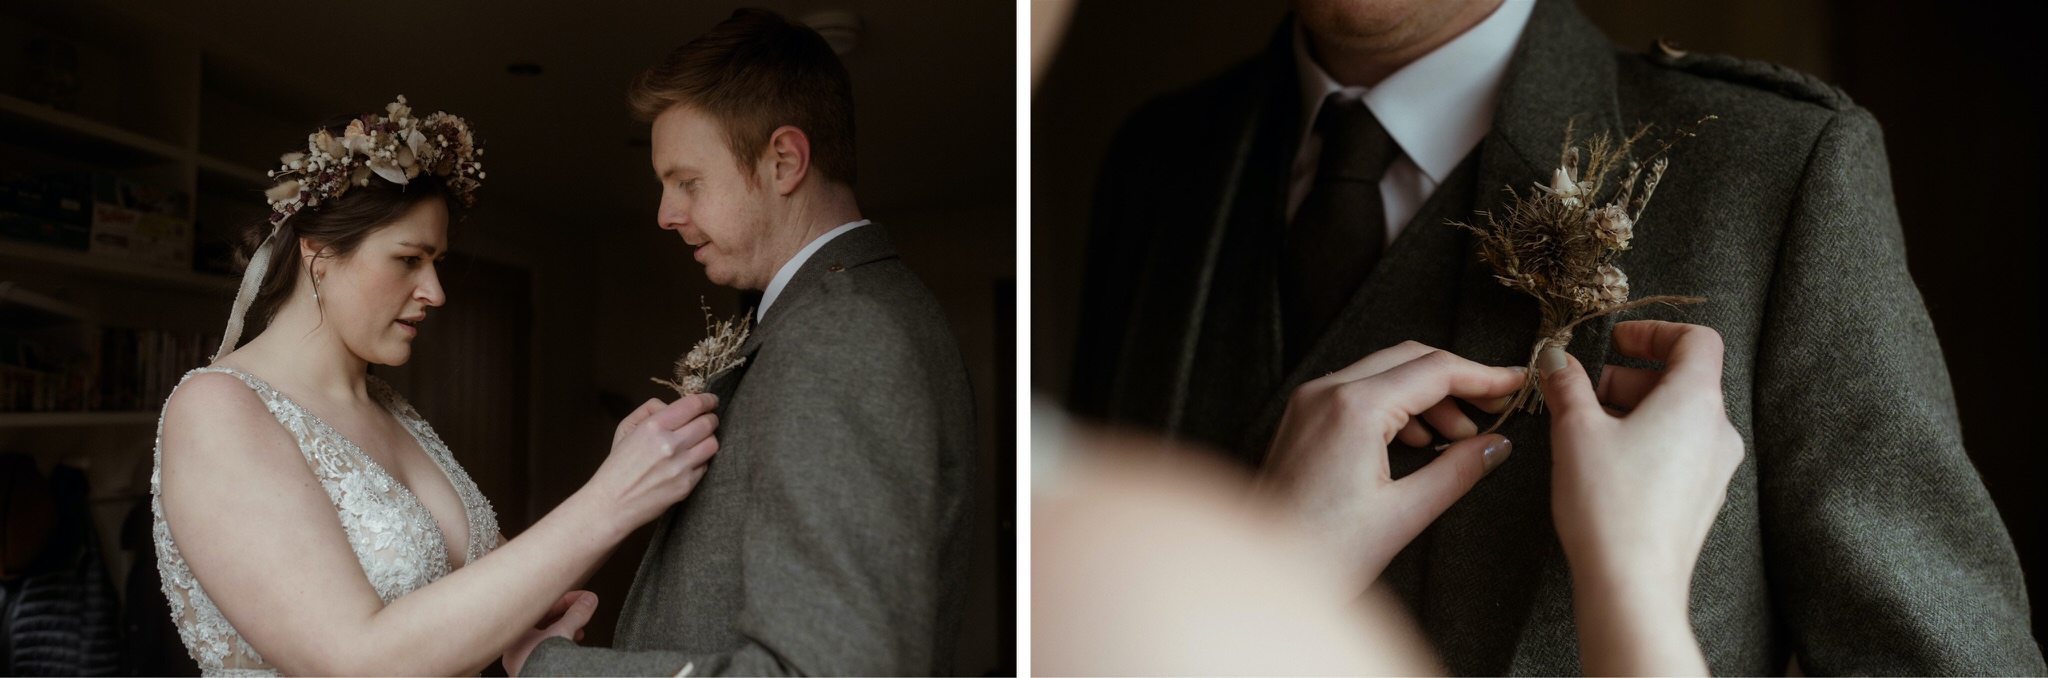 Details shot of bride attaching groom's buttonhole during their Scottish elopement wedding in Assynt